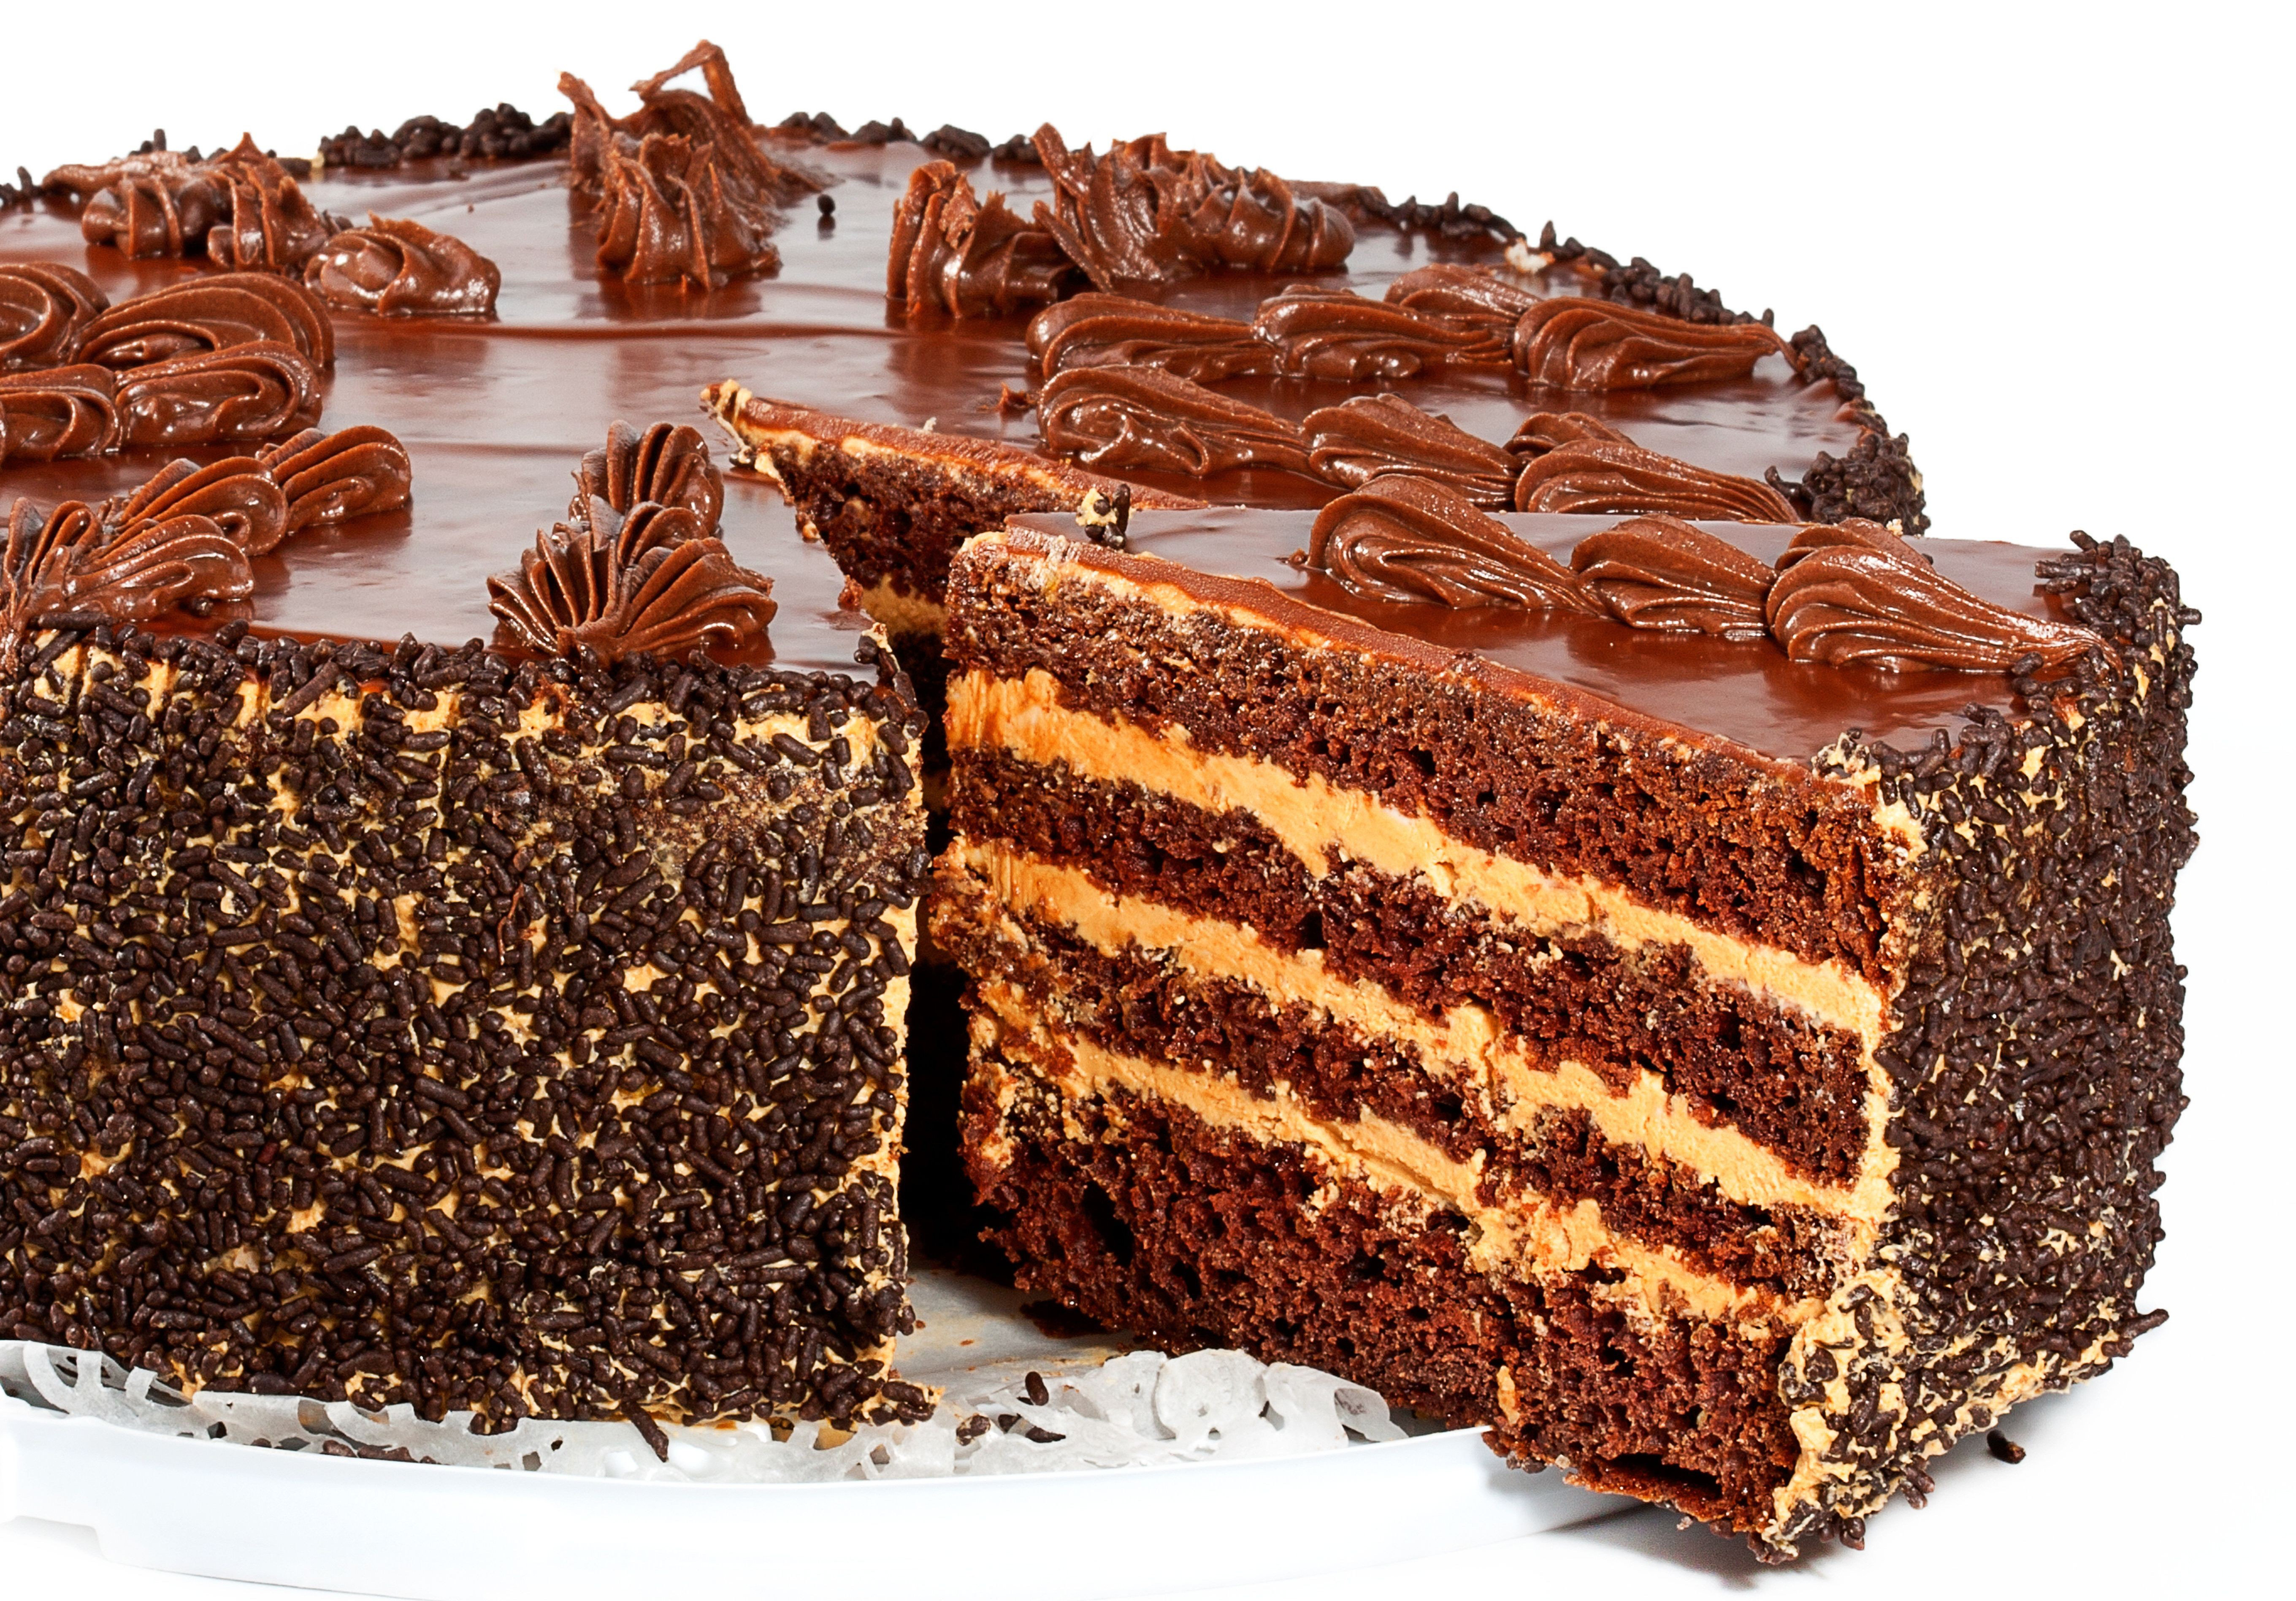 Cake Images In Full Hd : Choc Cake 5k Retina Ultra HD Wallpaper and Background ...